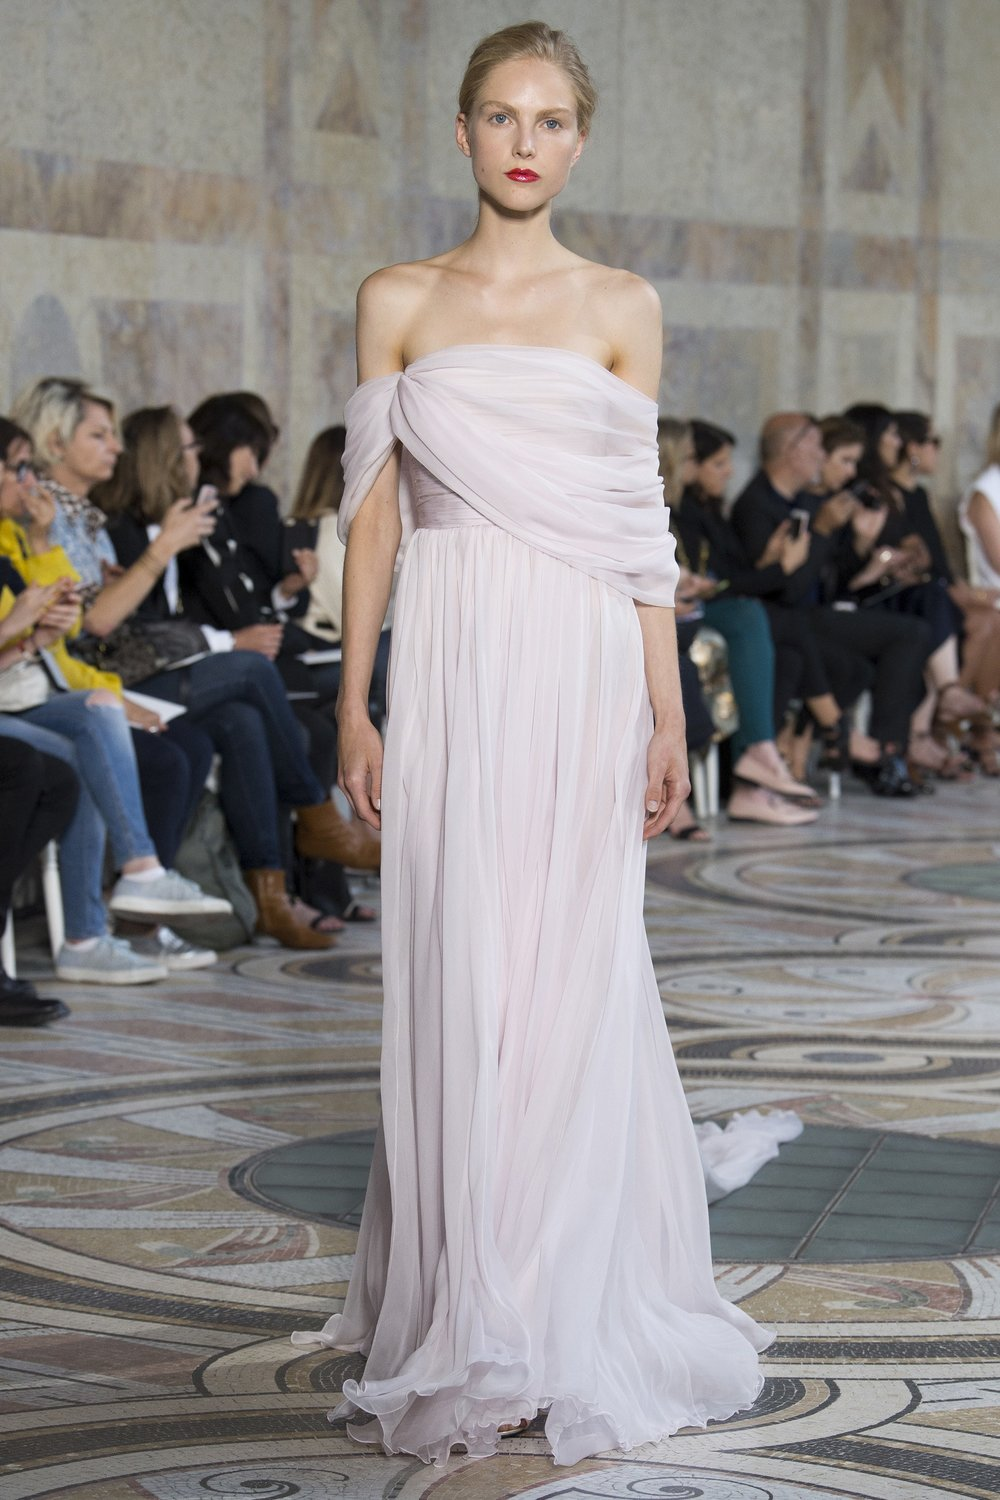 GIAMBATTISTA VALLI: Goddess-Sinous Draping